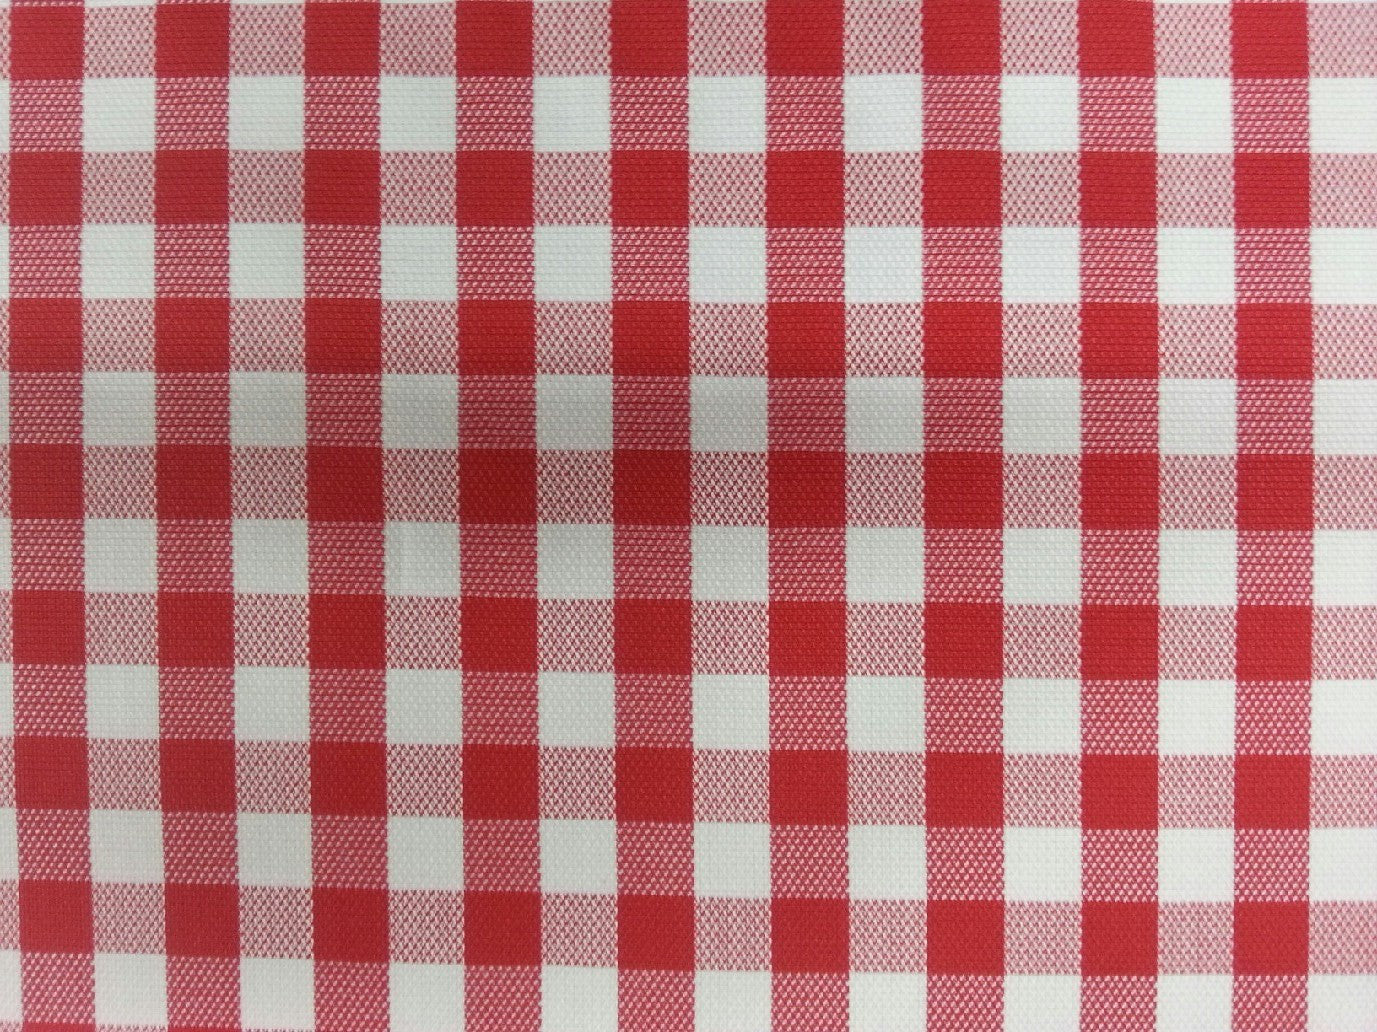 Red check on white background.